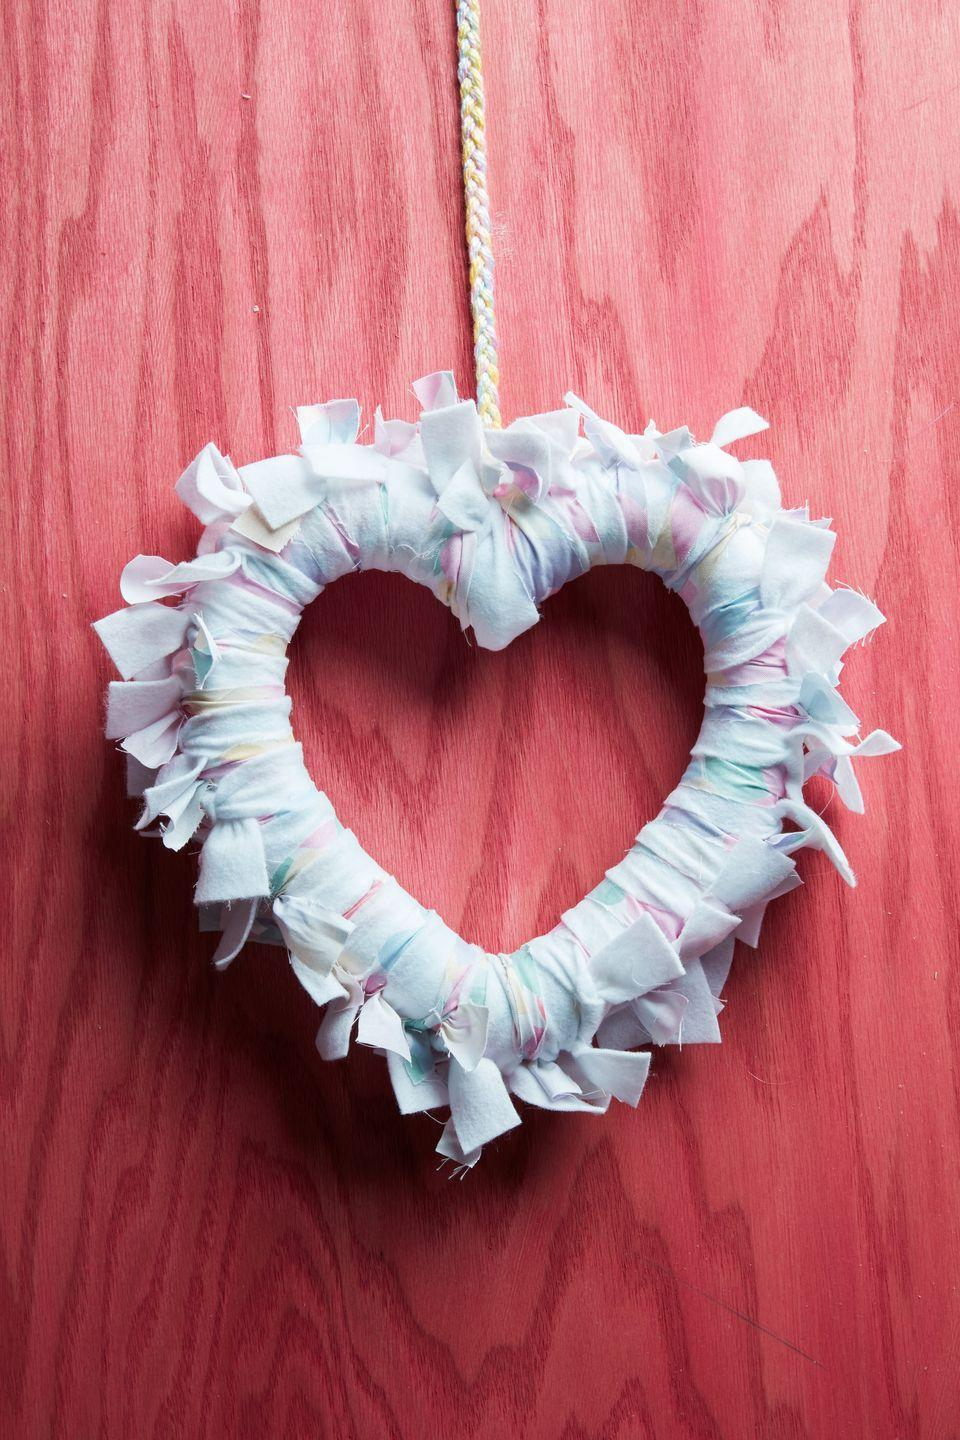 """<p>Wrap strips of soft flannel around a heart-shaped foam wreath form to create a soft statement piece that says """"I love you!""""</p><p><a class=""""link rapid-noclick-resp"""" href=""""https://www.amazon.com/Decorate-Garland-Valentines-Decoration-Rely2016/dp/B0799MLQTQ/ref=sr_1_9?linkCode=ogi&tag=syn-yahoo-20&ascsubtag=%5Bartid%7C10050.g.2971%5Bsrc%7Cyahoo-us"""" rel=""""nofollow noopener"""" target=""""_blank"""" data-ylk=""""slk:SHOP WREATH FORM"""">SHOP WREATH FORM</a></p><p> </p><p> </p><p> </p><p> </p><p> </p><p> </p><p> </p><p> </p><p> </p><p> </p><p> </p><p> </p><p> </p><p> </p><p> </p><p> </p>"""